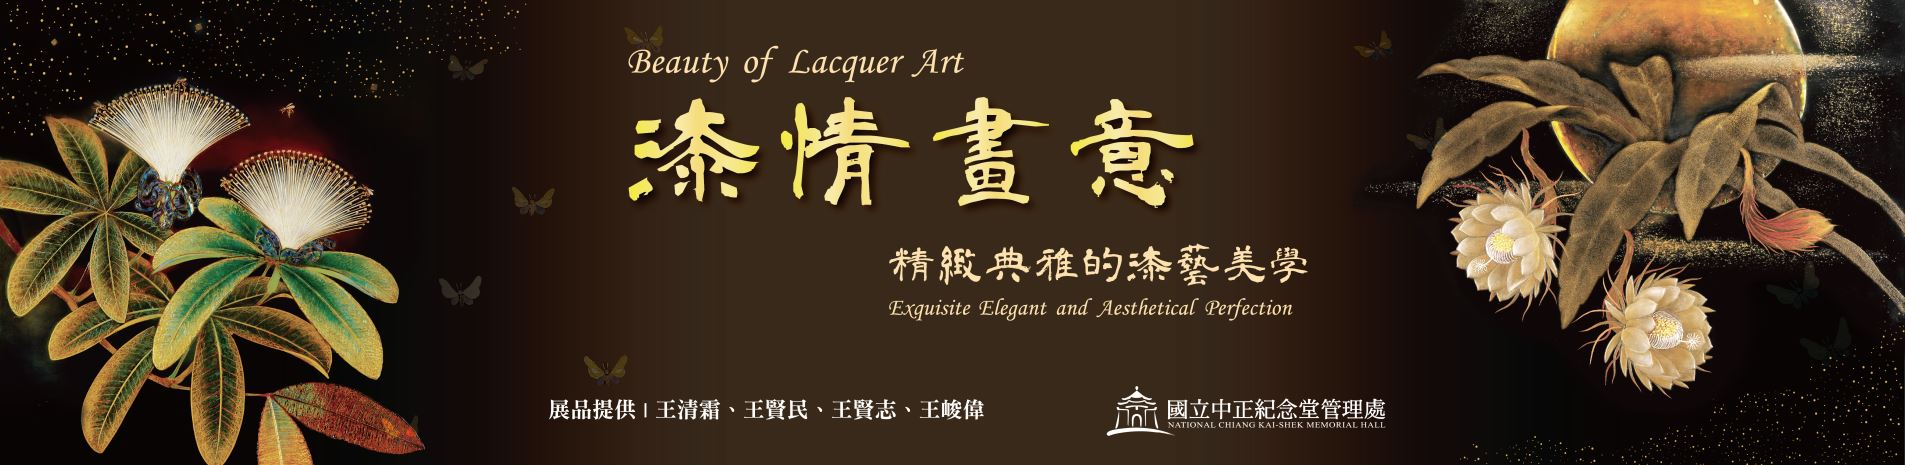 Beauty of Lacquer Art – Exquisite, Elegant and Aesthetical Perfection (Free Admission)